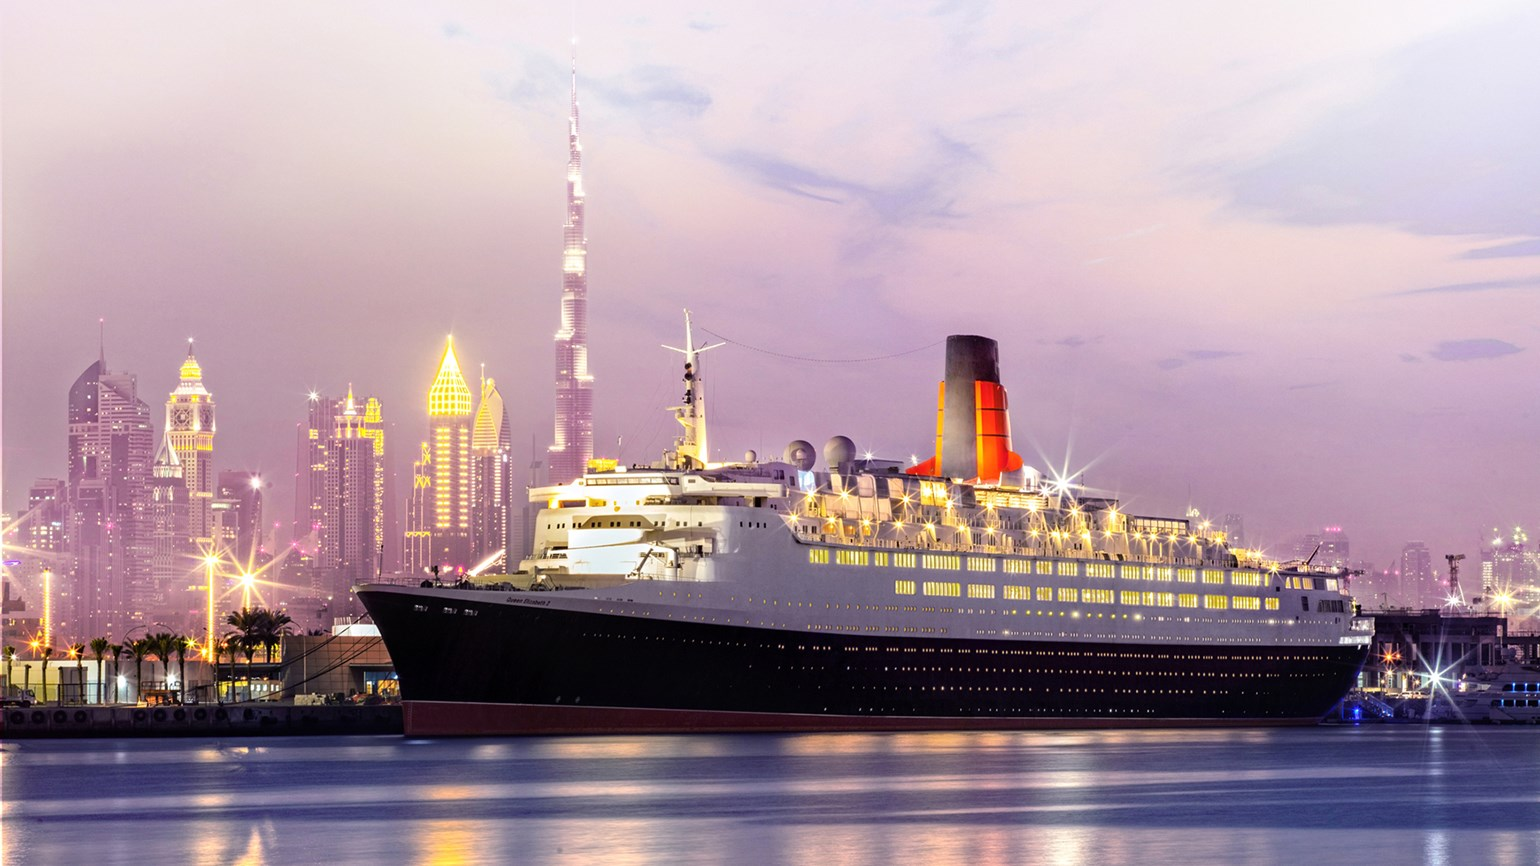 Retired QE2 opens as floating hotel in Dubai